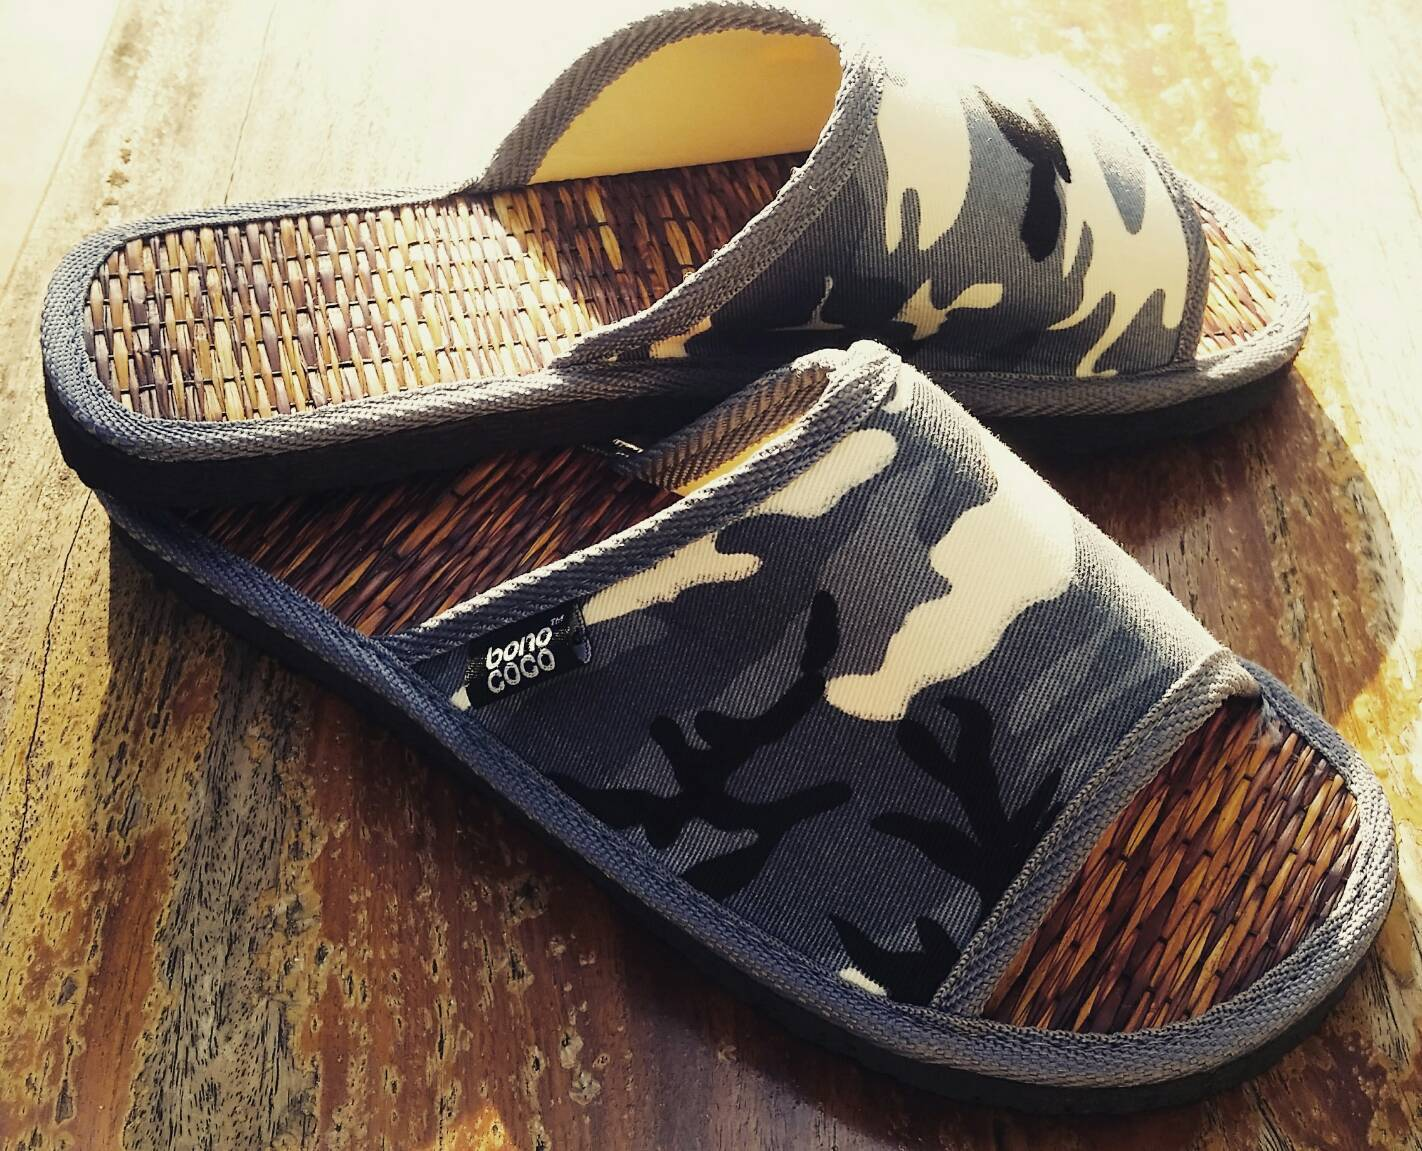 Man's/Woman's size sandals slippers camouflage pattern size Man's/Woman's 8 Online Shopping Orders are welcome Breathable shoes deec83